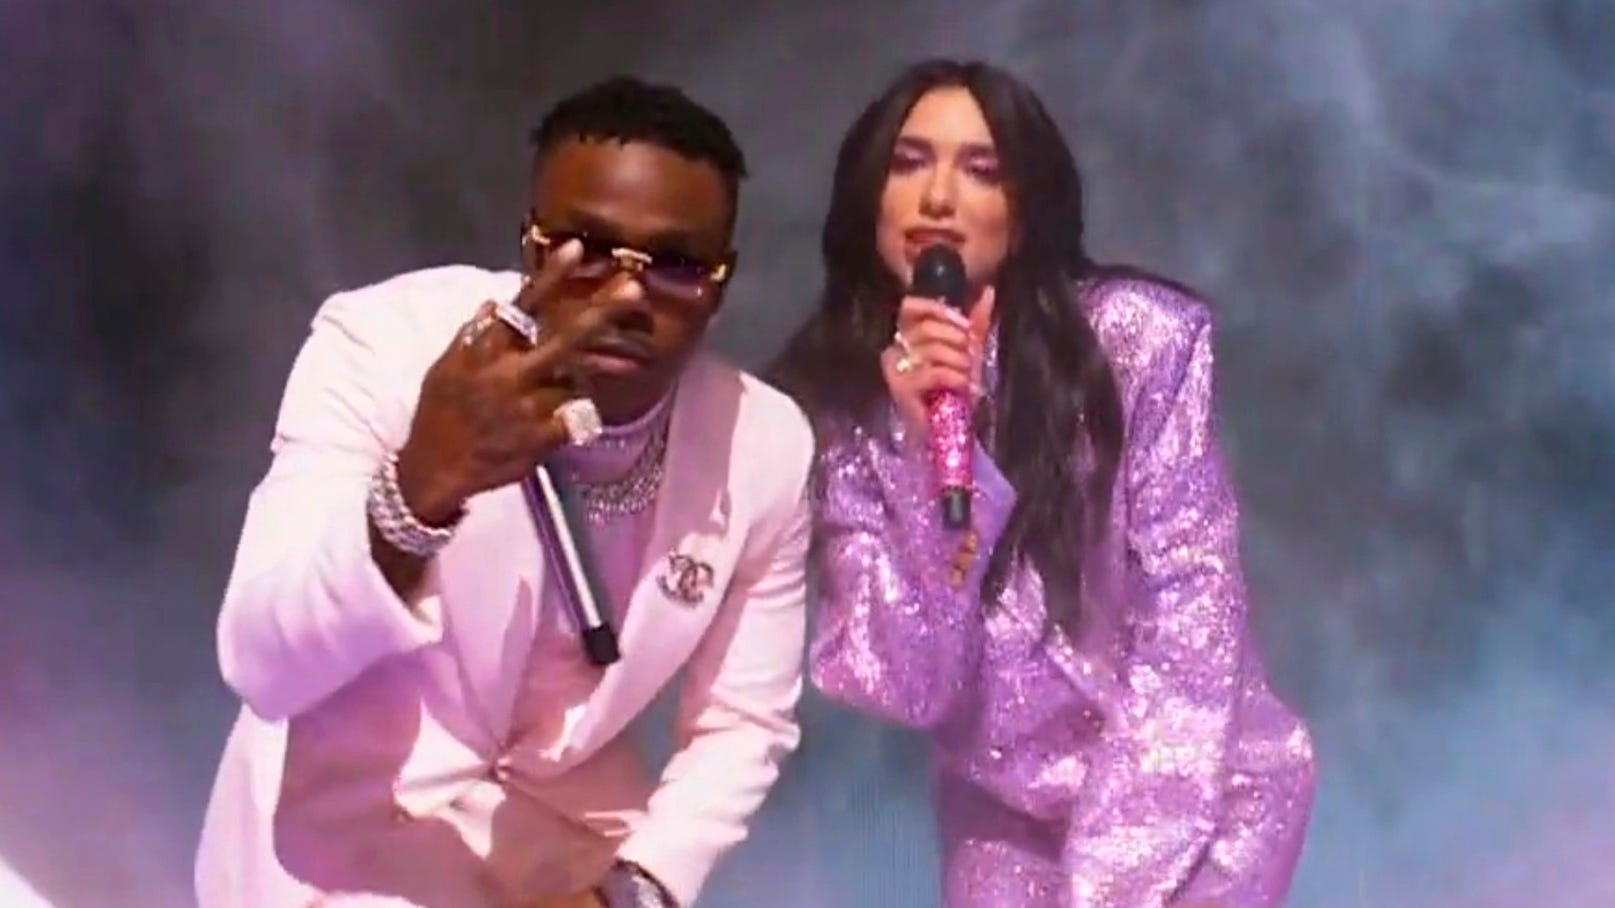 Dua Lipa 'surprised and horrified' at DaBaby's homophobic comments